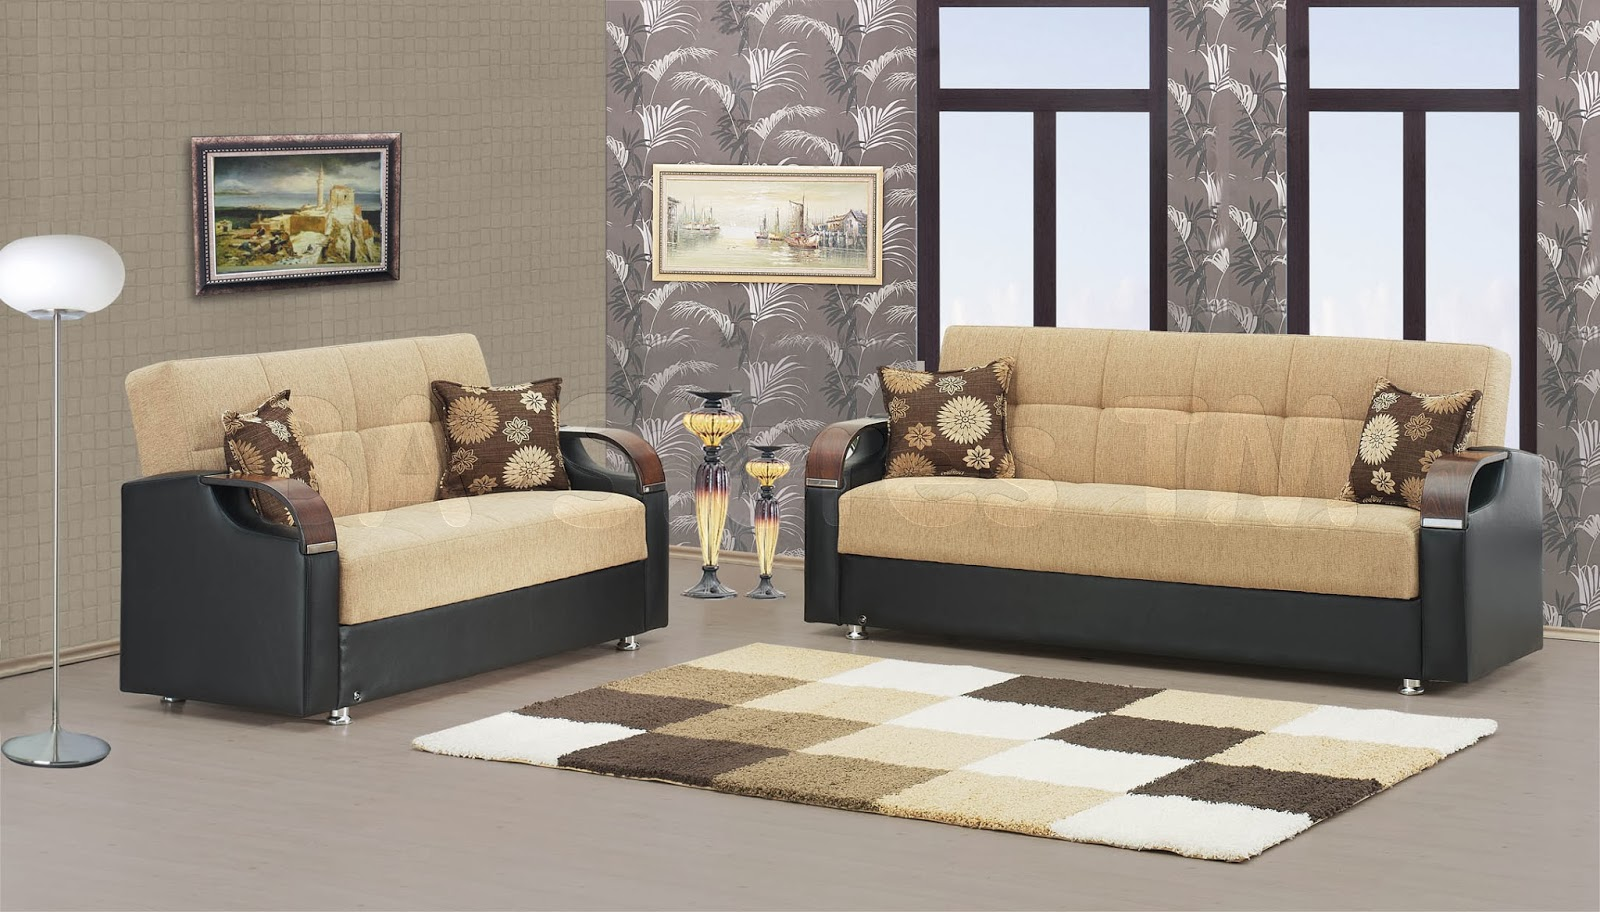 Living room design with leather sofa living room New couch designs